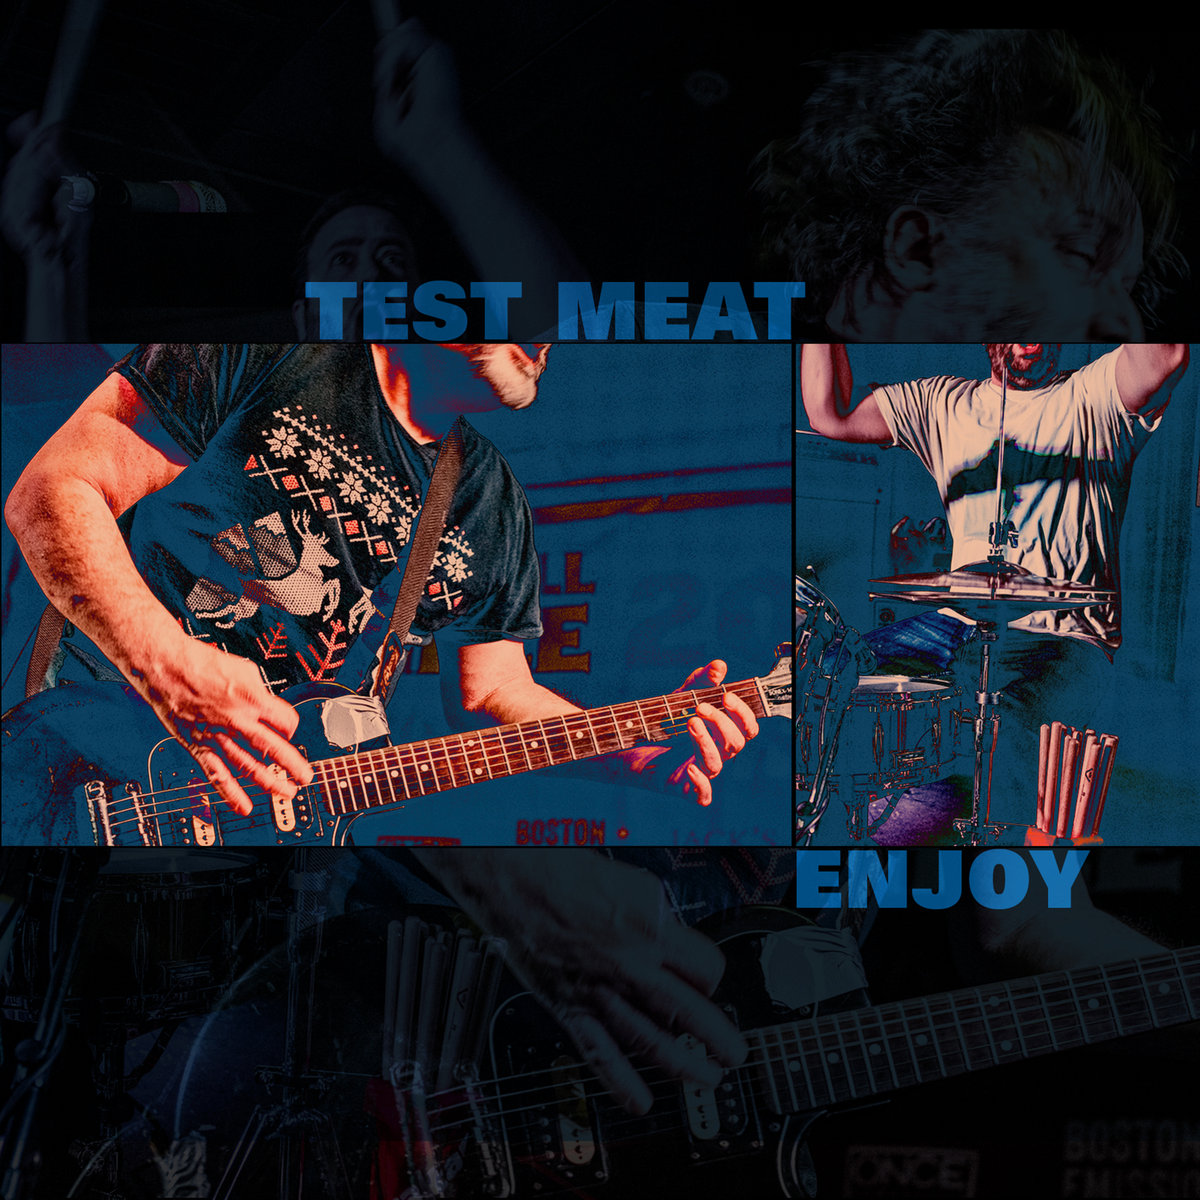 test meat enjoy